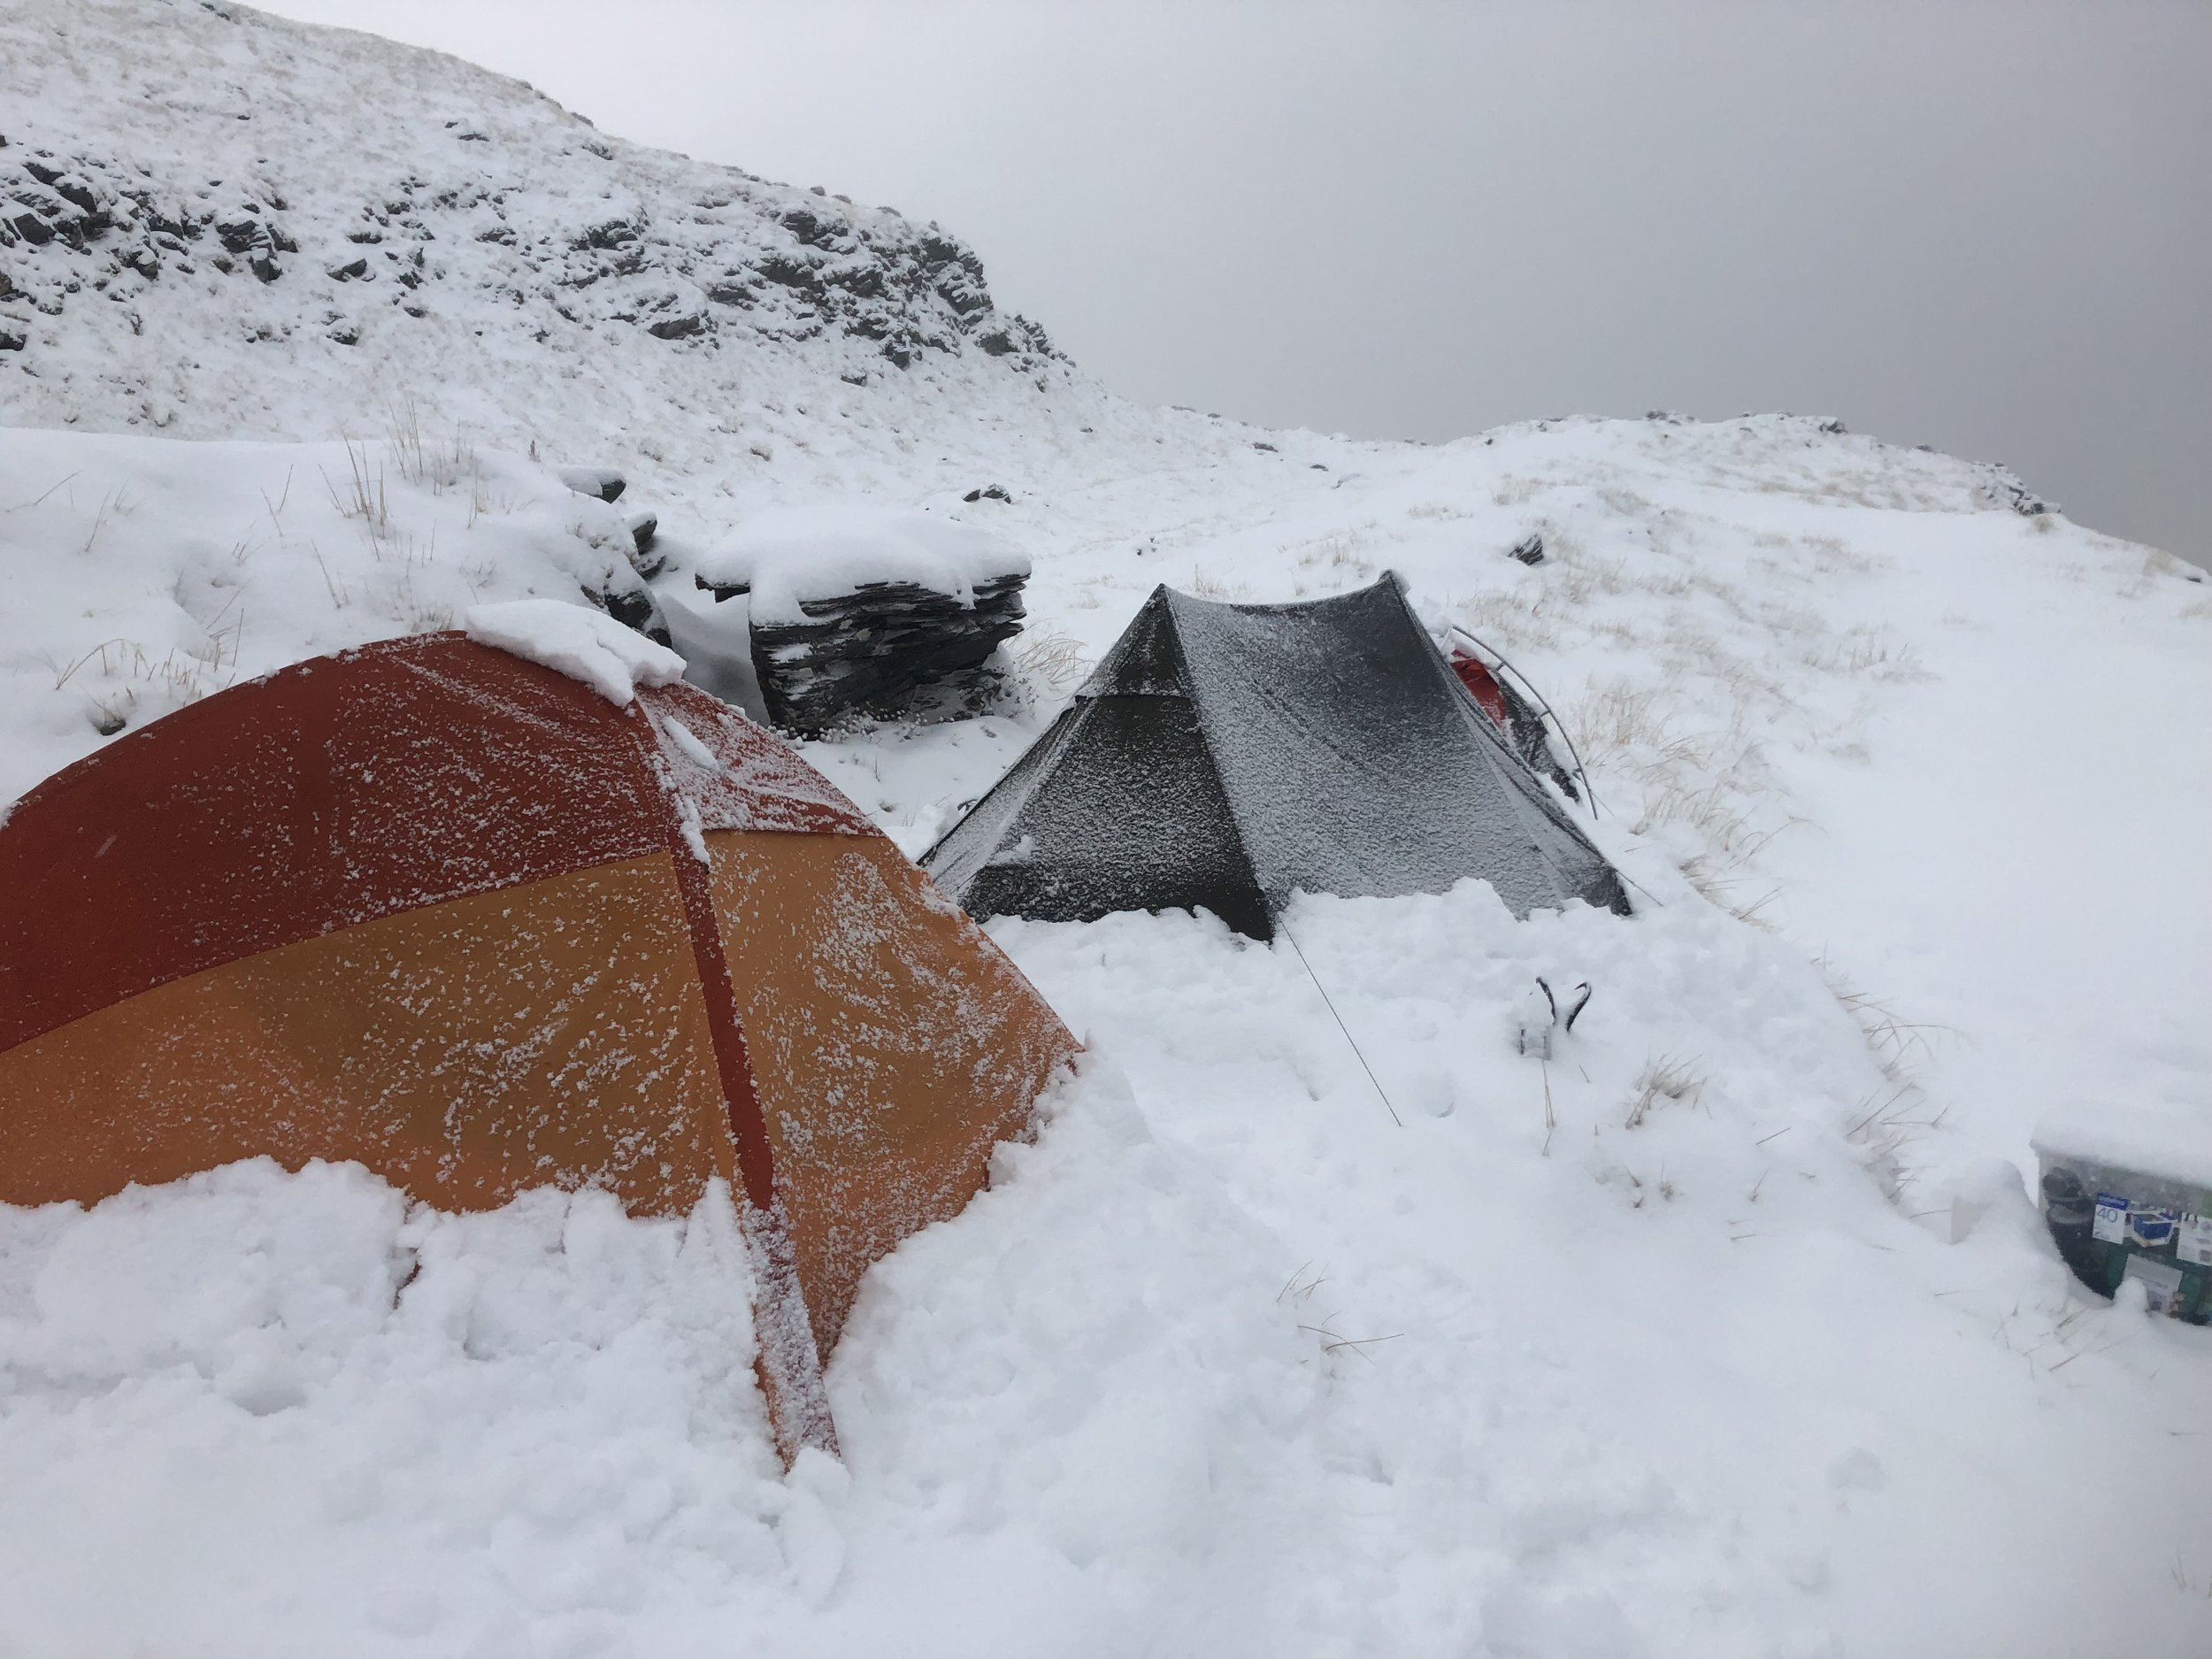 Still a surprisingly warm night with the fresh snow on the tents